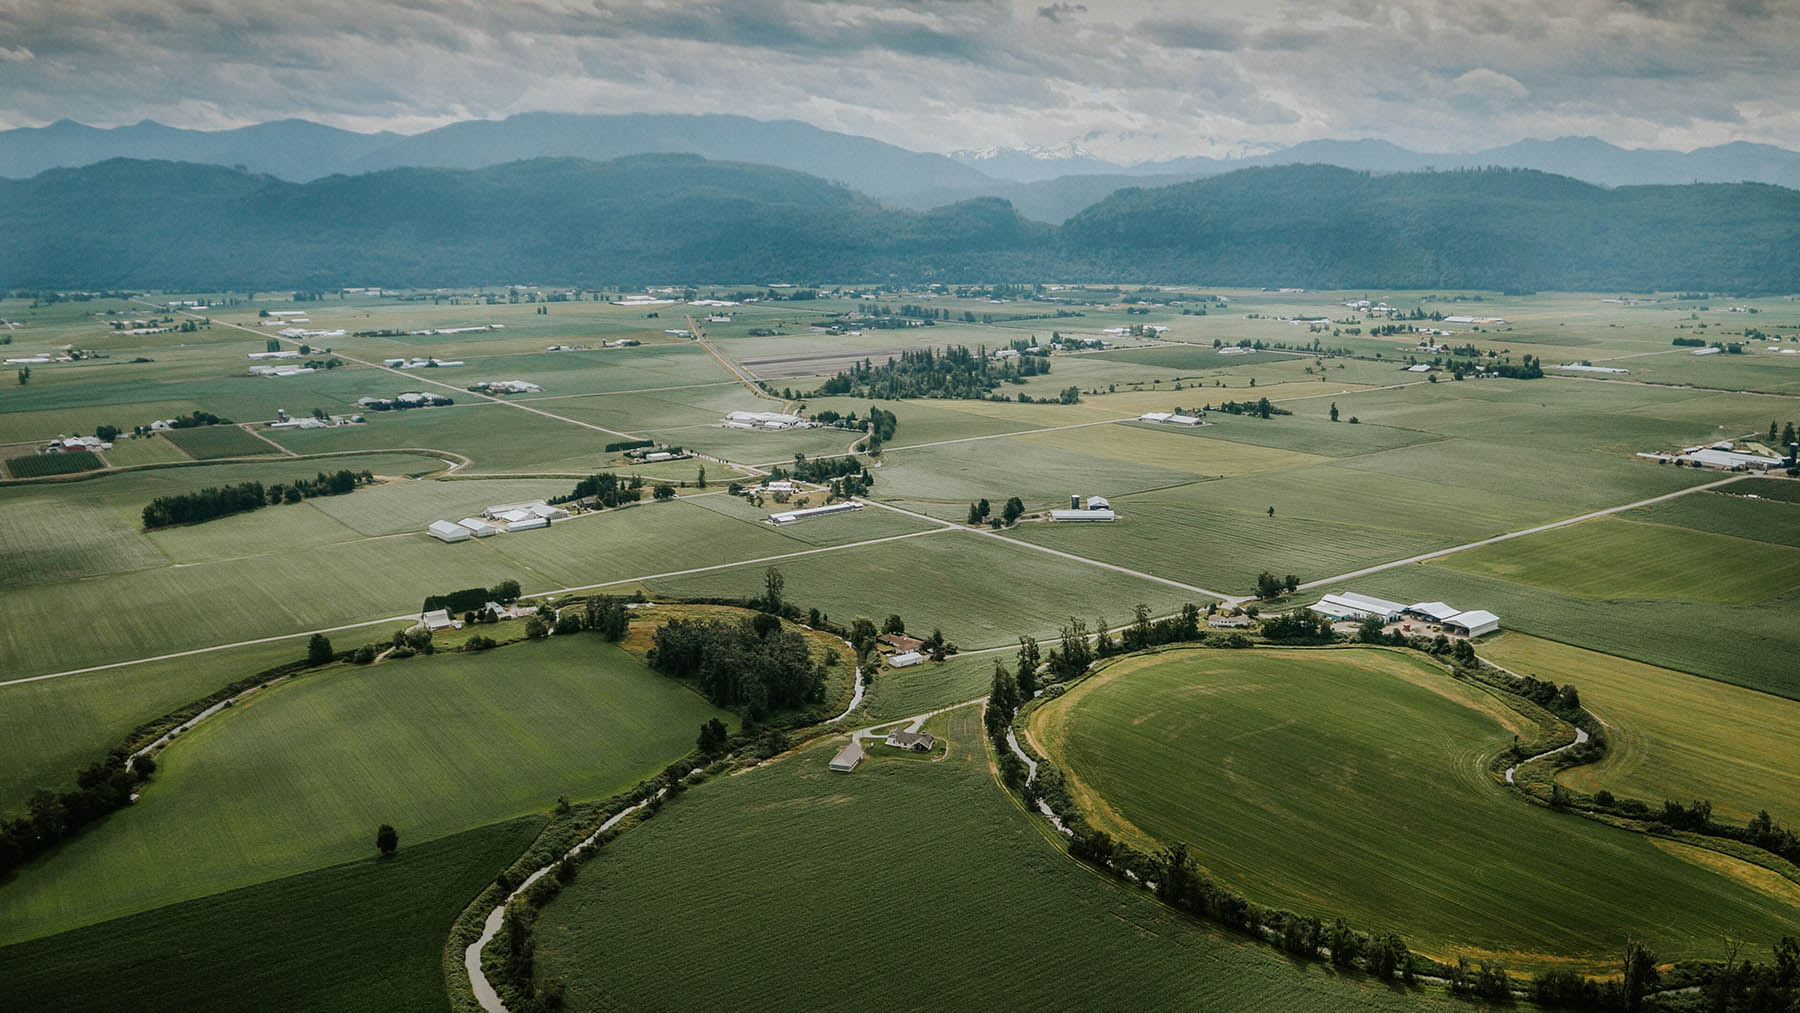 Tourism Abbotsford - Scenic shot of the beautiful farmland in Abby